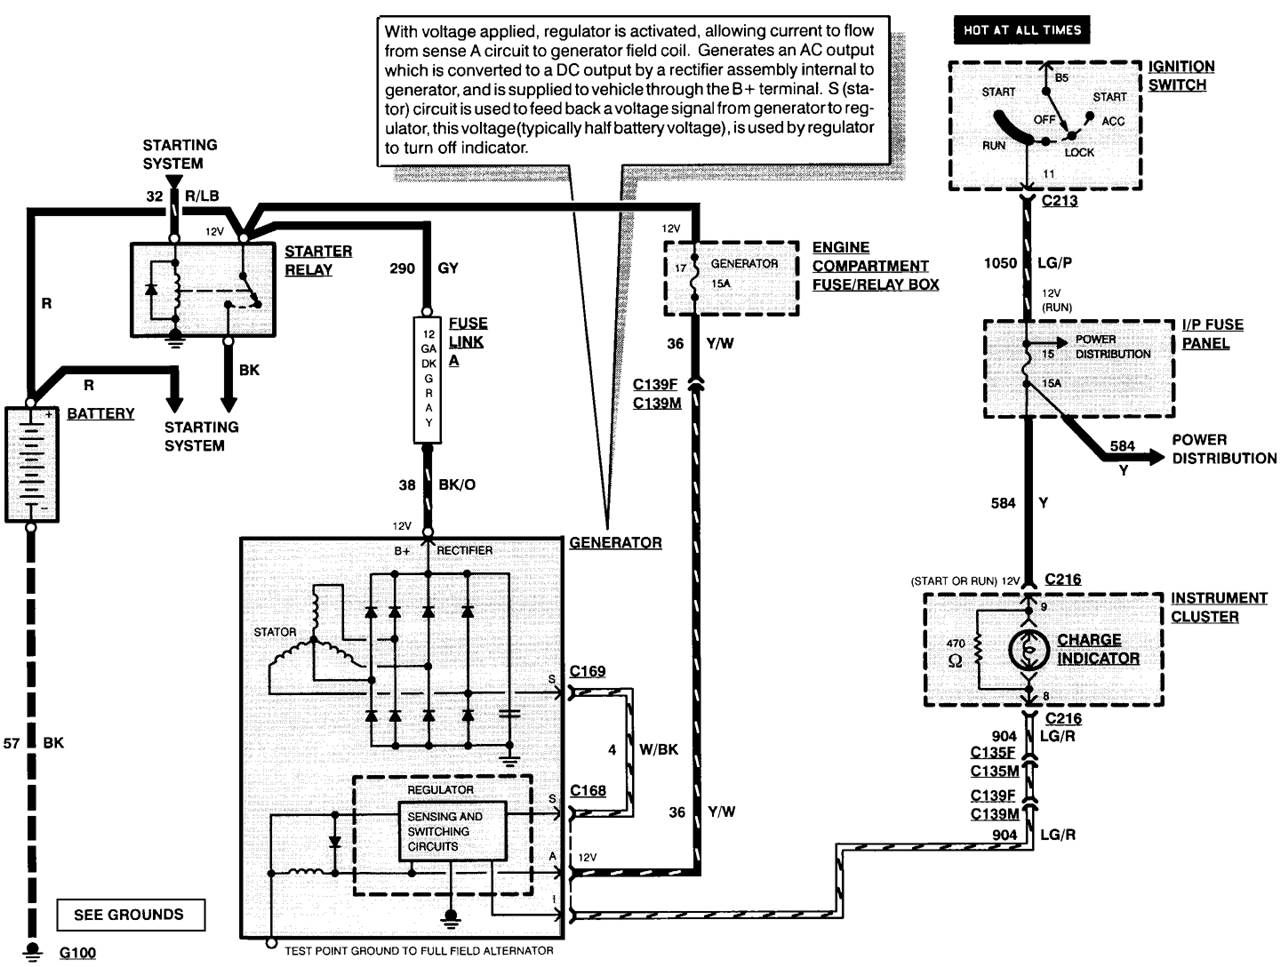 Mitsubishi Alternator Wire Schematic - Wiring Data •